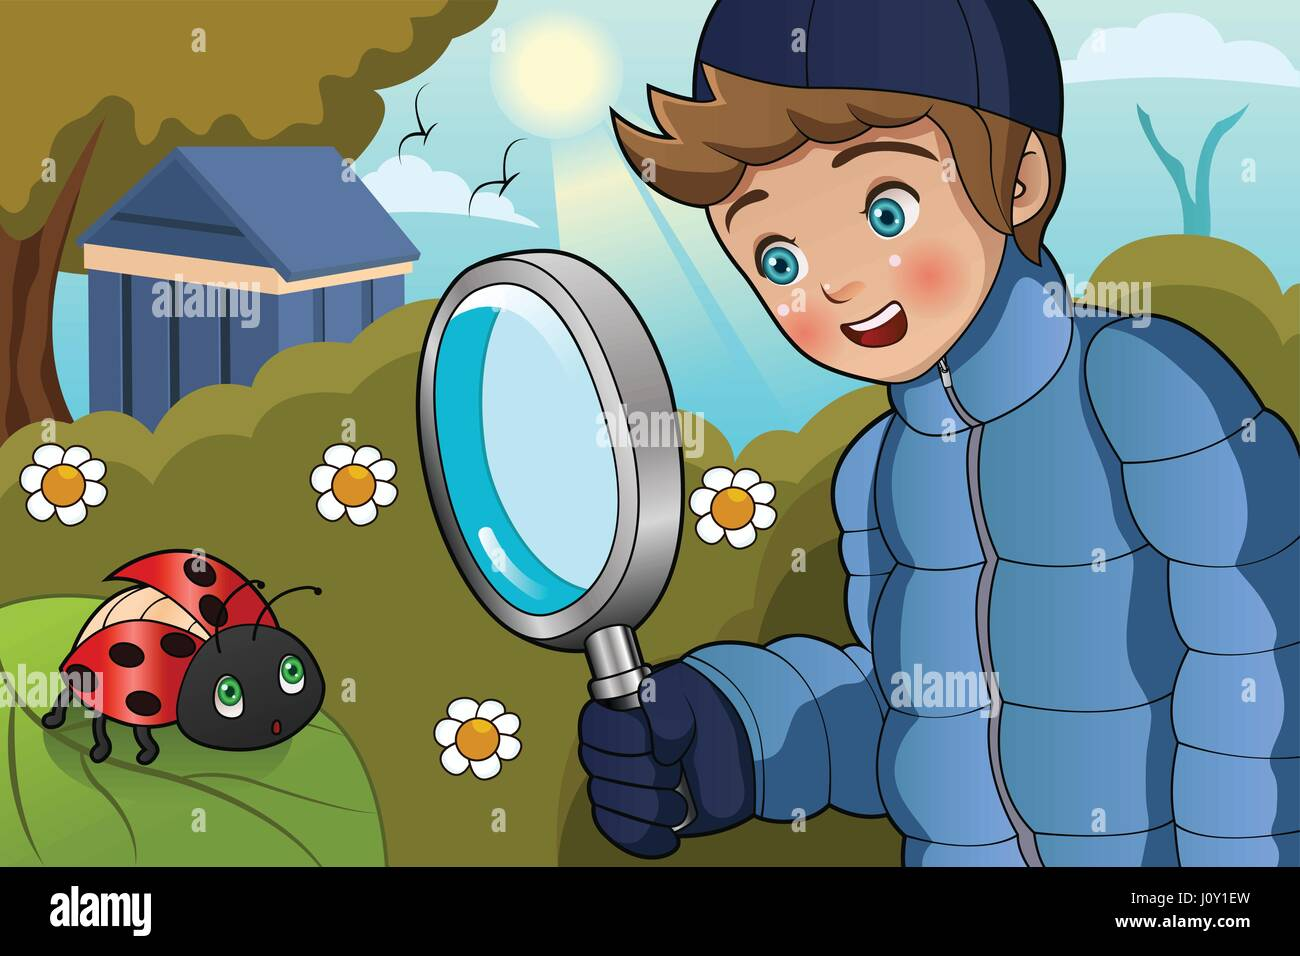 A vector illustration of cute boy looking at ladybug on a leaf using a magnifying glass - Stock Image